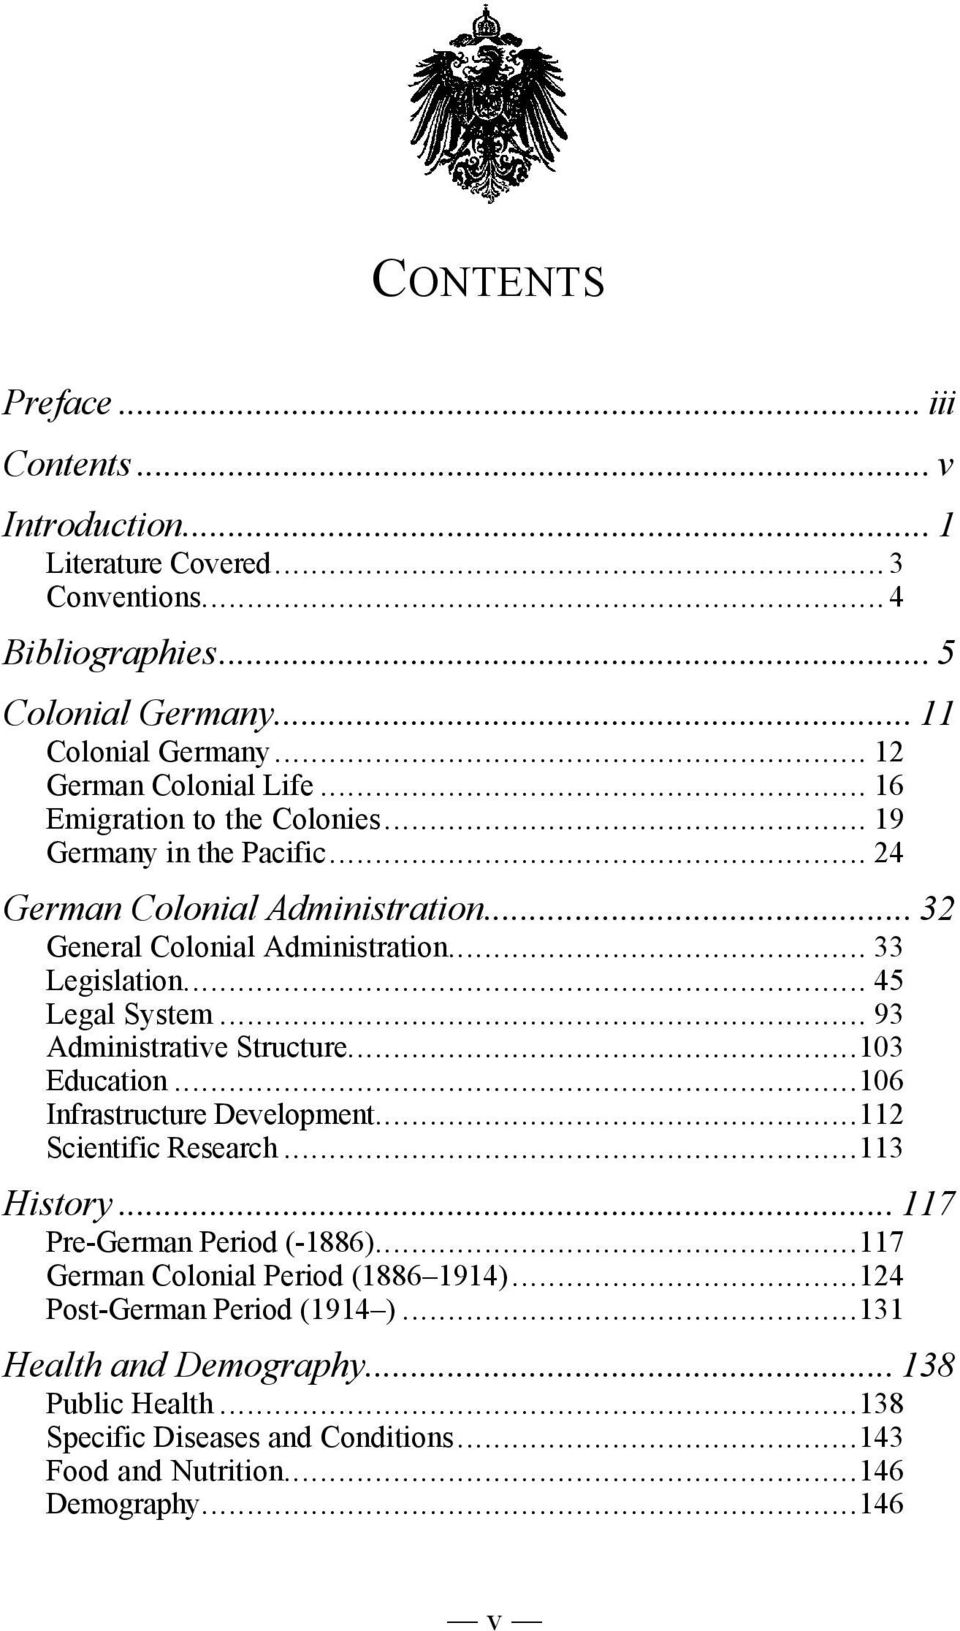 .. 45 Legal System... 93 Administrative Structure...103 Education...106 Infrastructure Development...112 Scientific Research...113 History... 117 Pre-German Period (-1886).